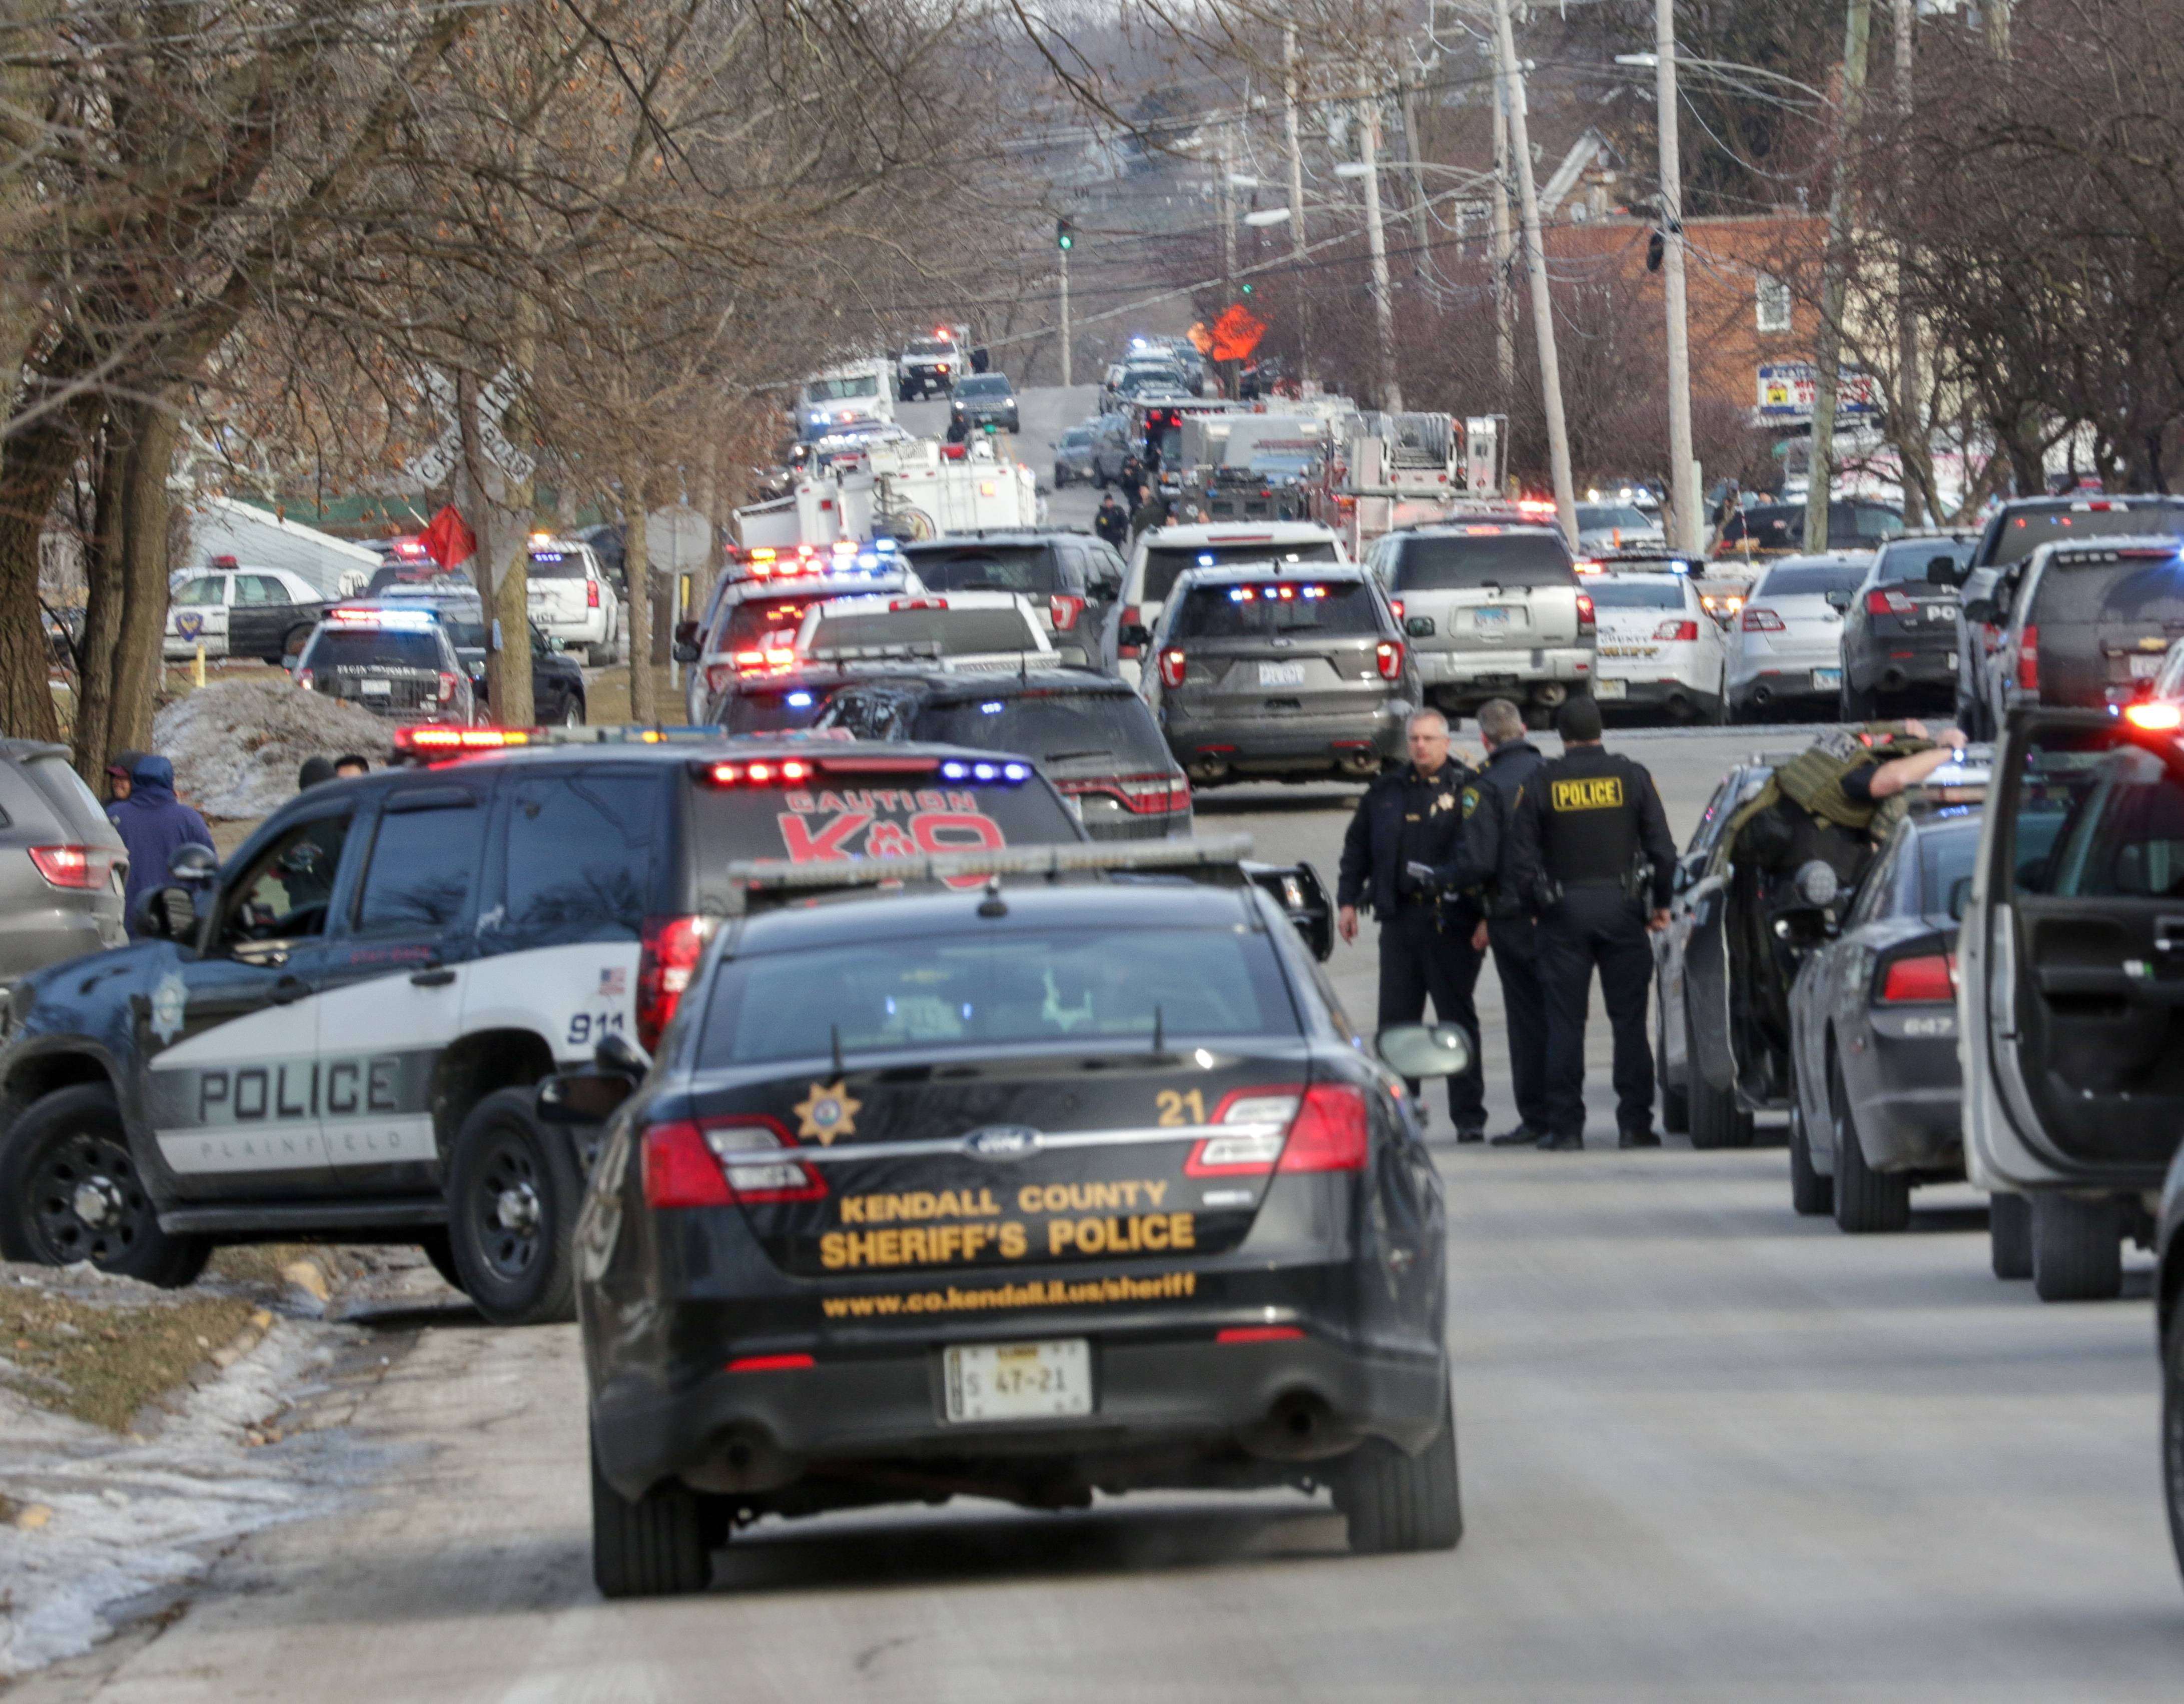 Five people were killed and five police officers and multiple civilians were wounded in an Aurora shooting Friday at the Henry Pratt Co. warehouse near Prairie and Highland avenues. The shooter also was killed.